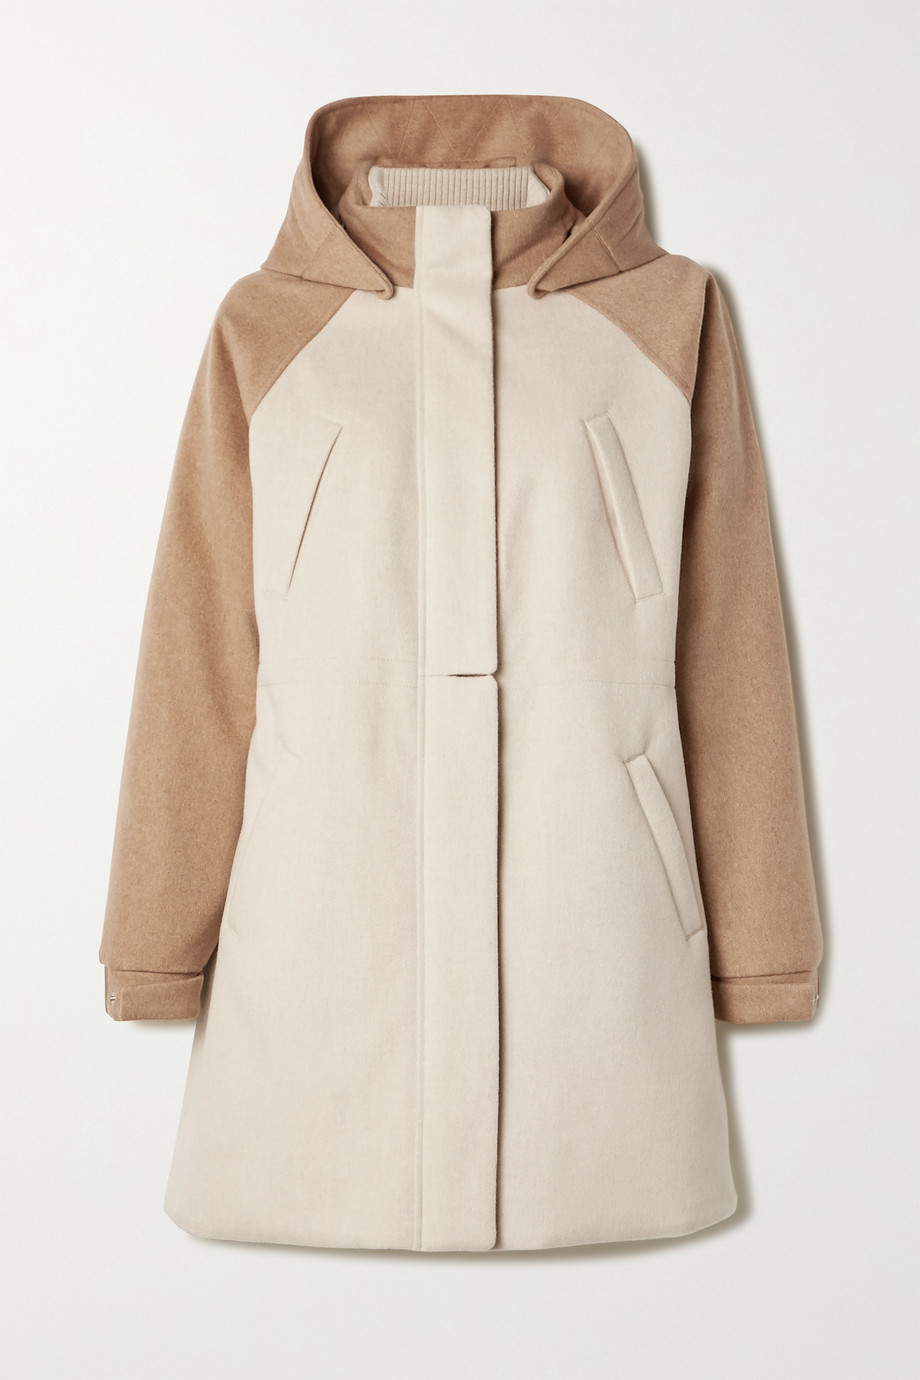 Loro Piana Hooded leather-trimmed cashmere coat